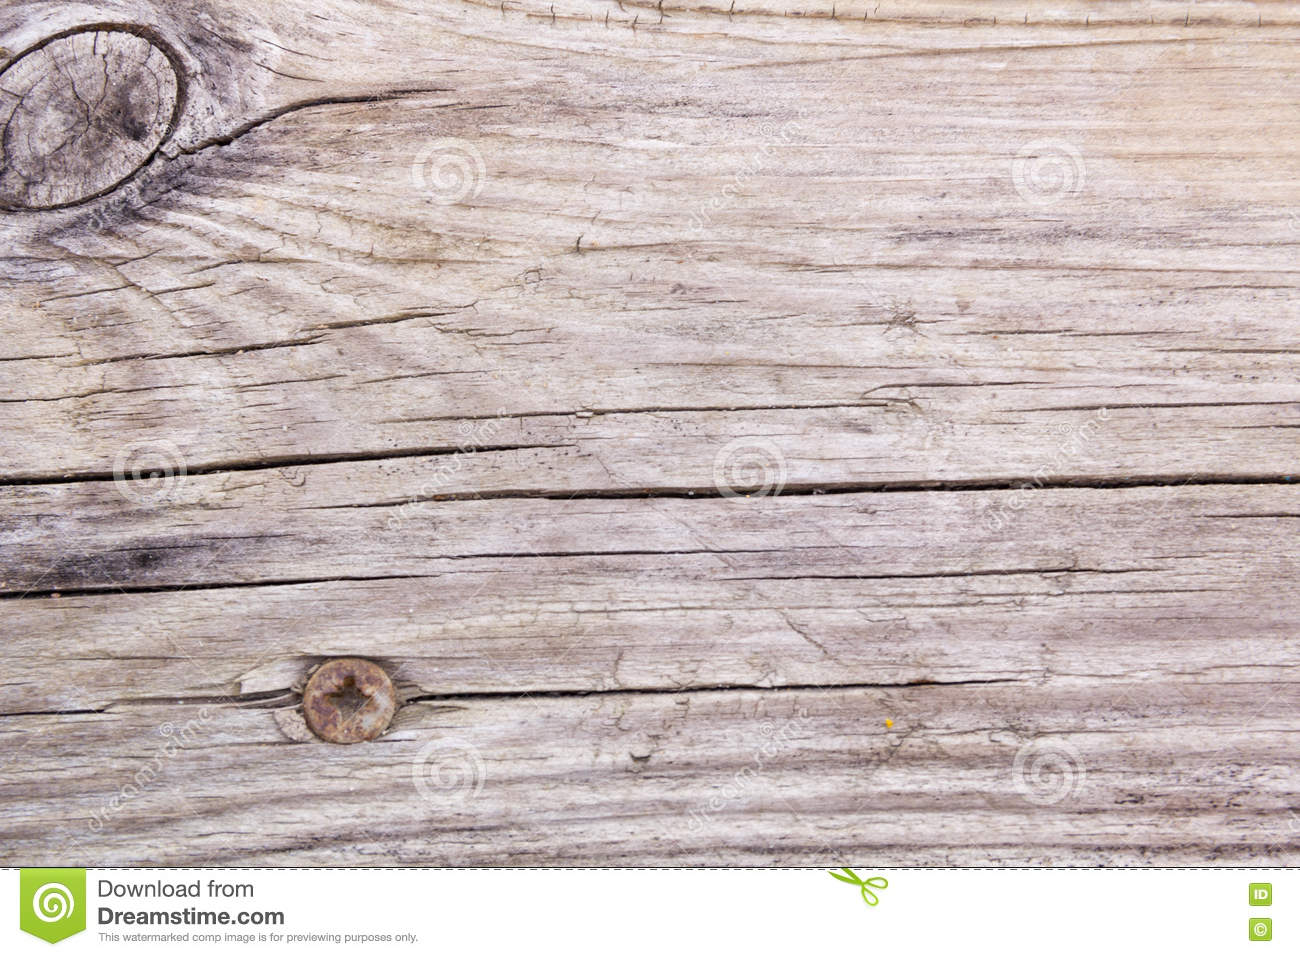 Old vintage white natural wood or wooden texture background or - Realistic Wooden Background Natural Tones Grunge Style Wood Texture Grey Plank Striped